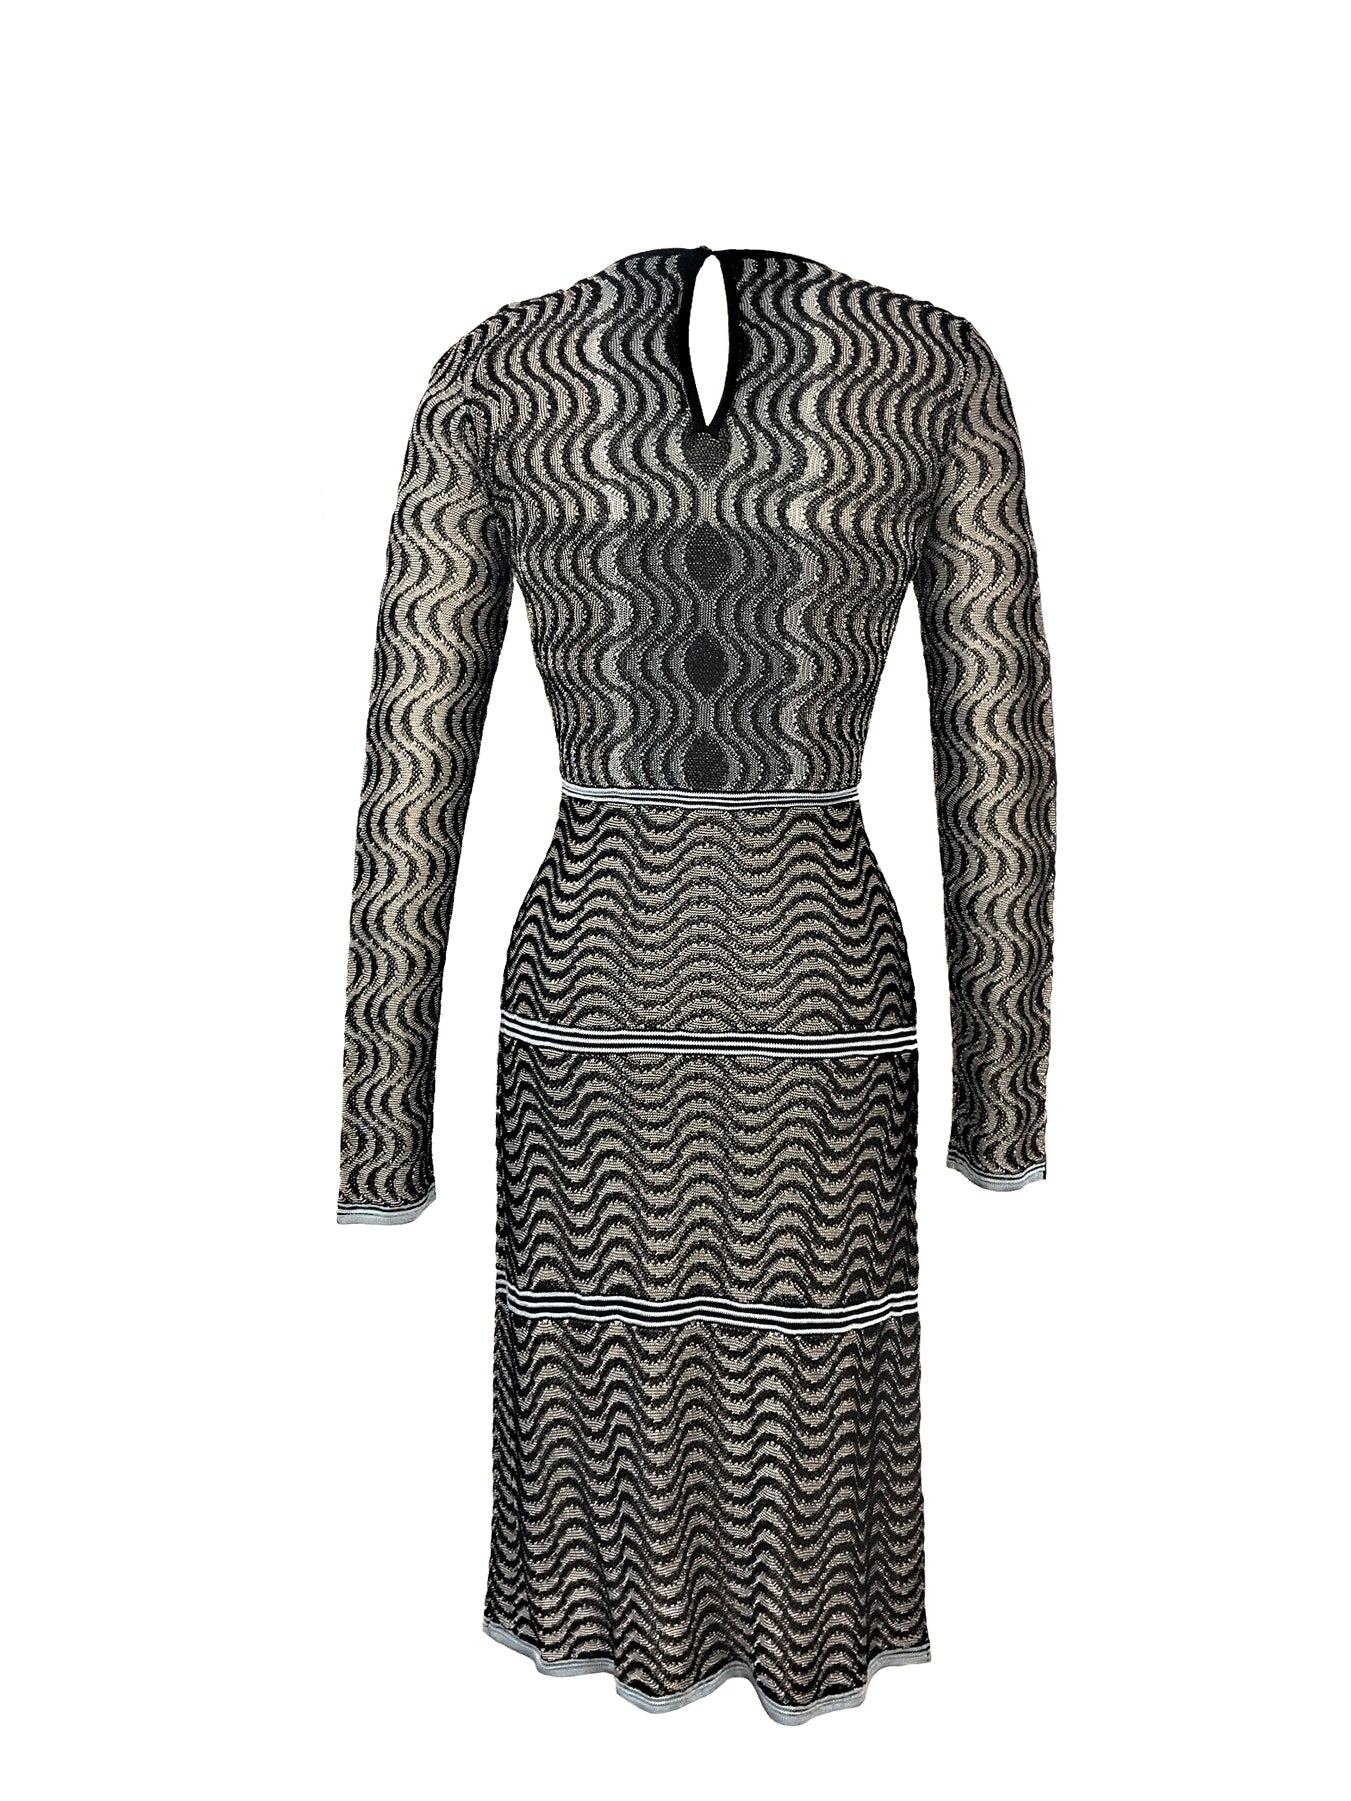 Historic New York Gradation Knit Dress - Historic New York